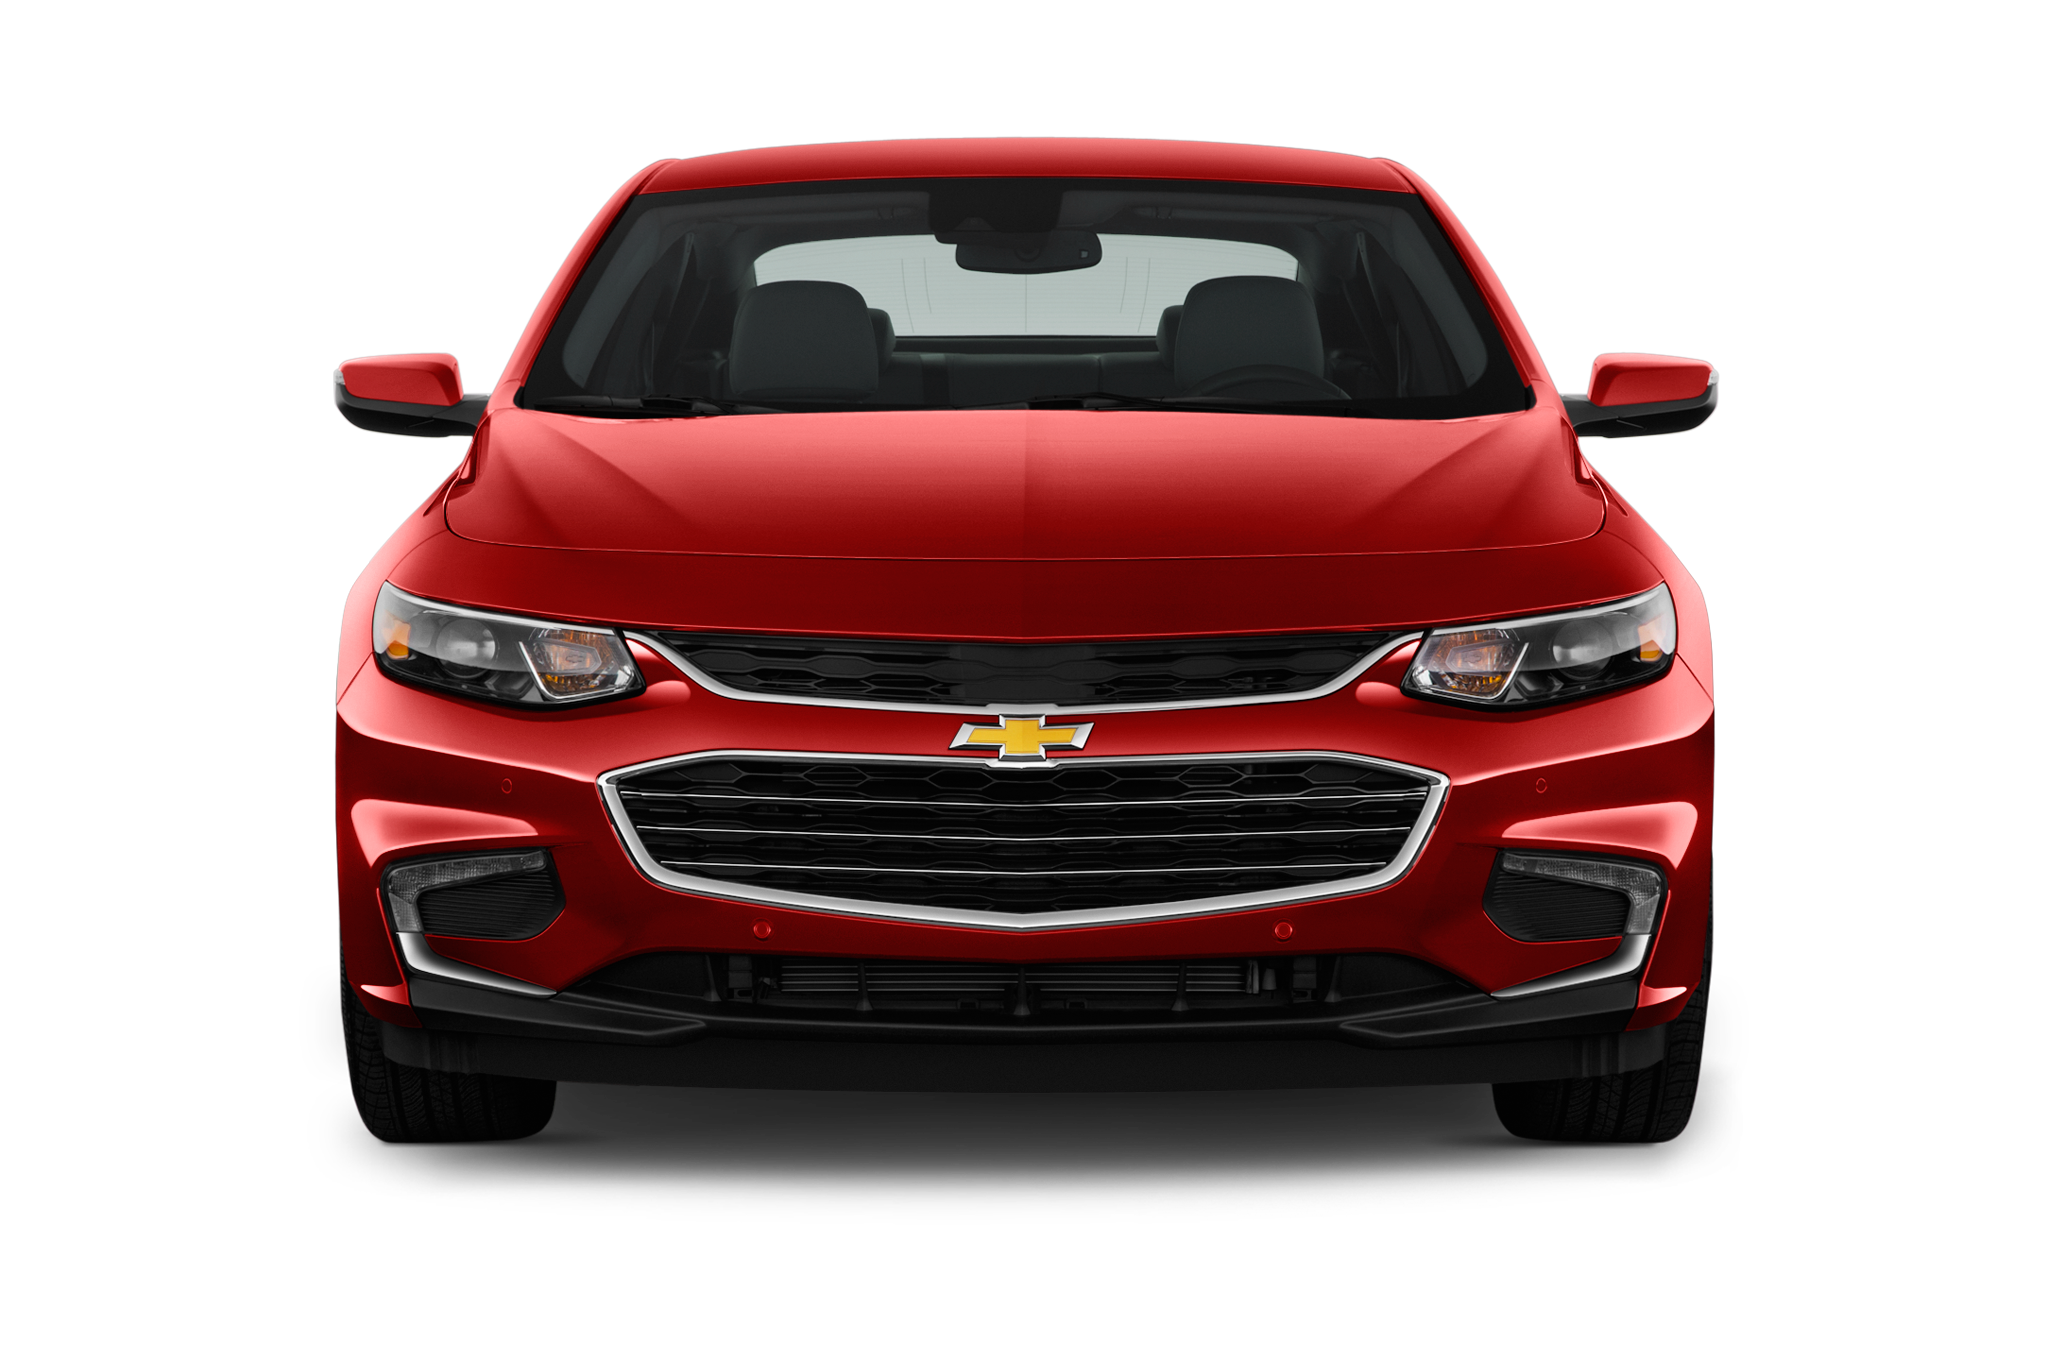 Chevy Malibu Mpg >> 2016 Chevrolet Malibu Review